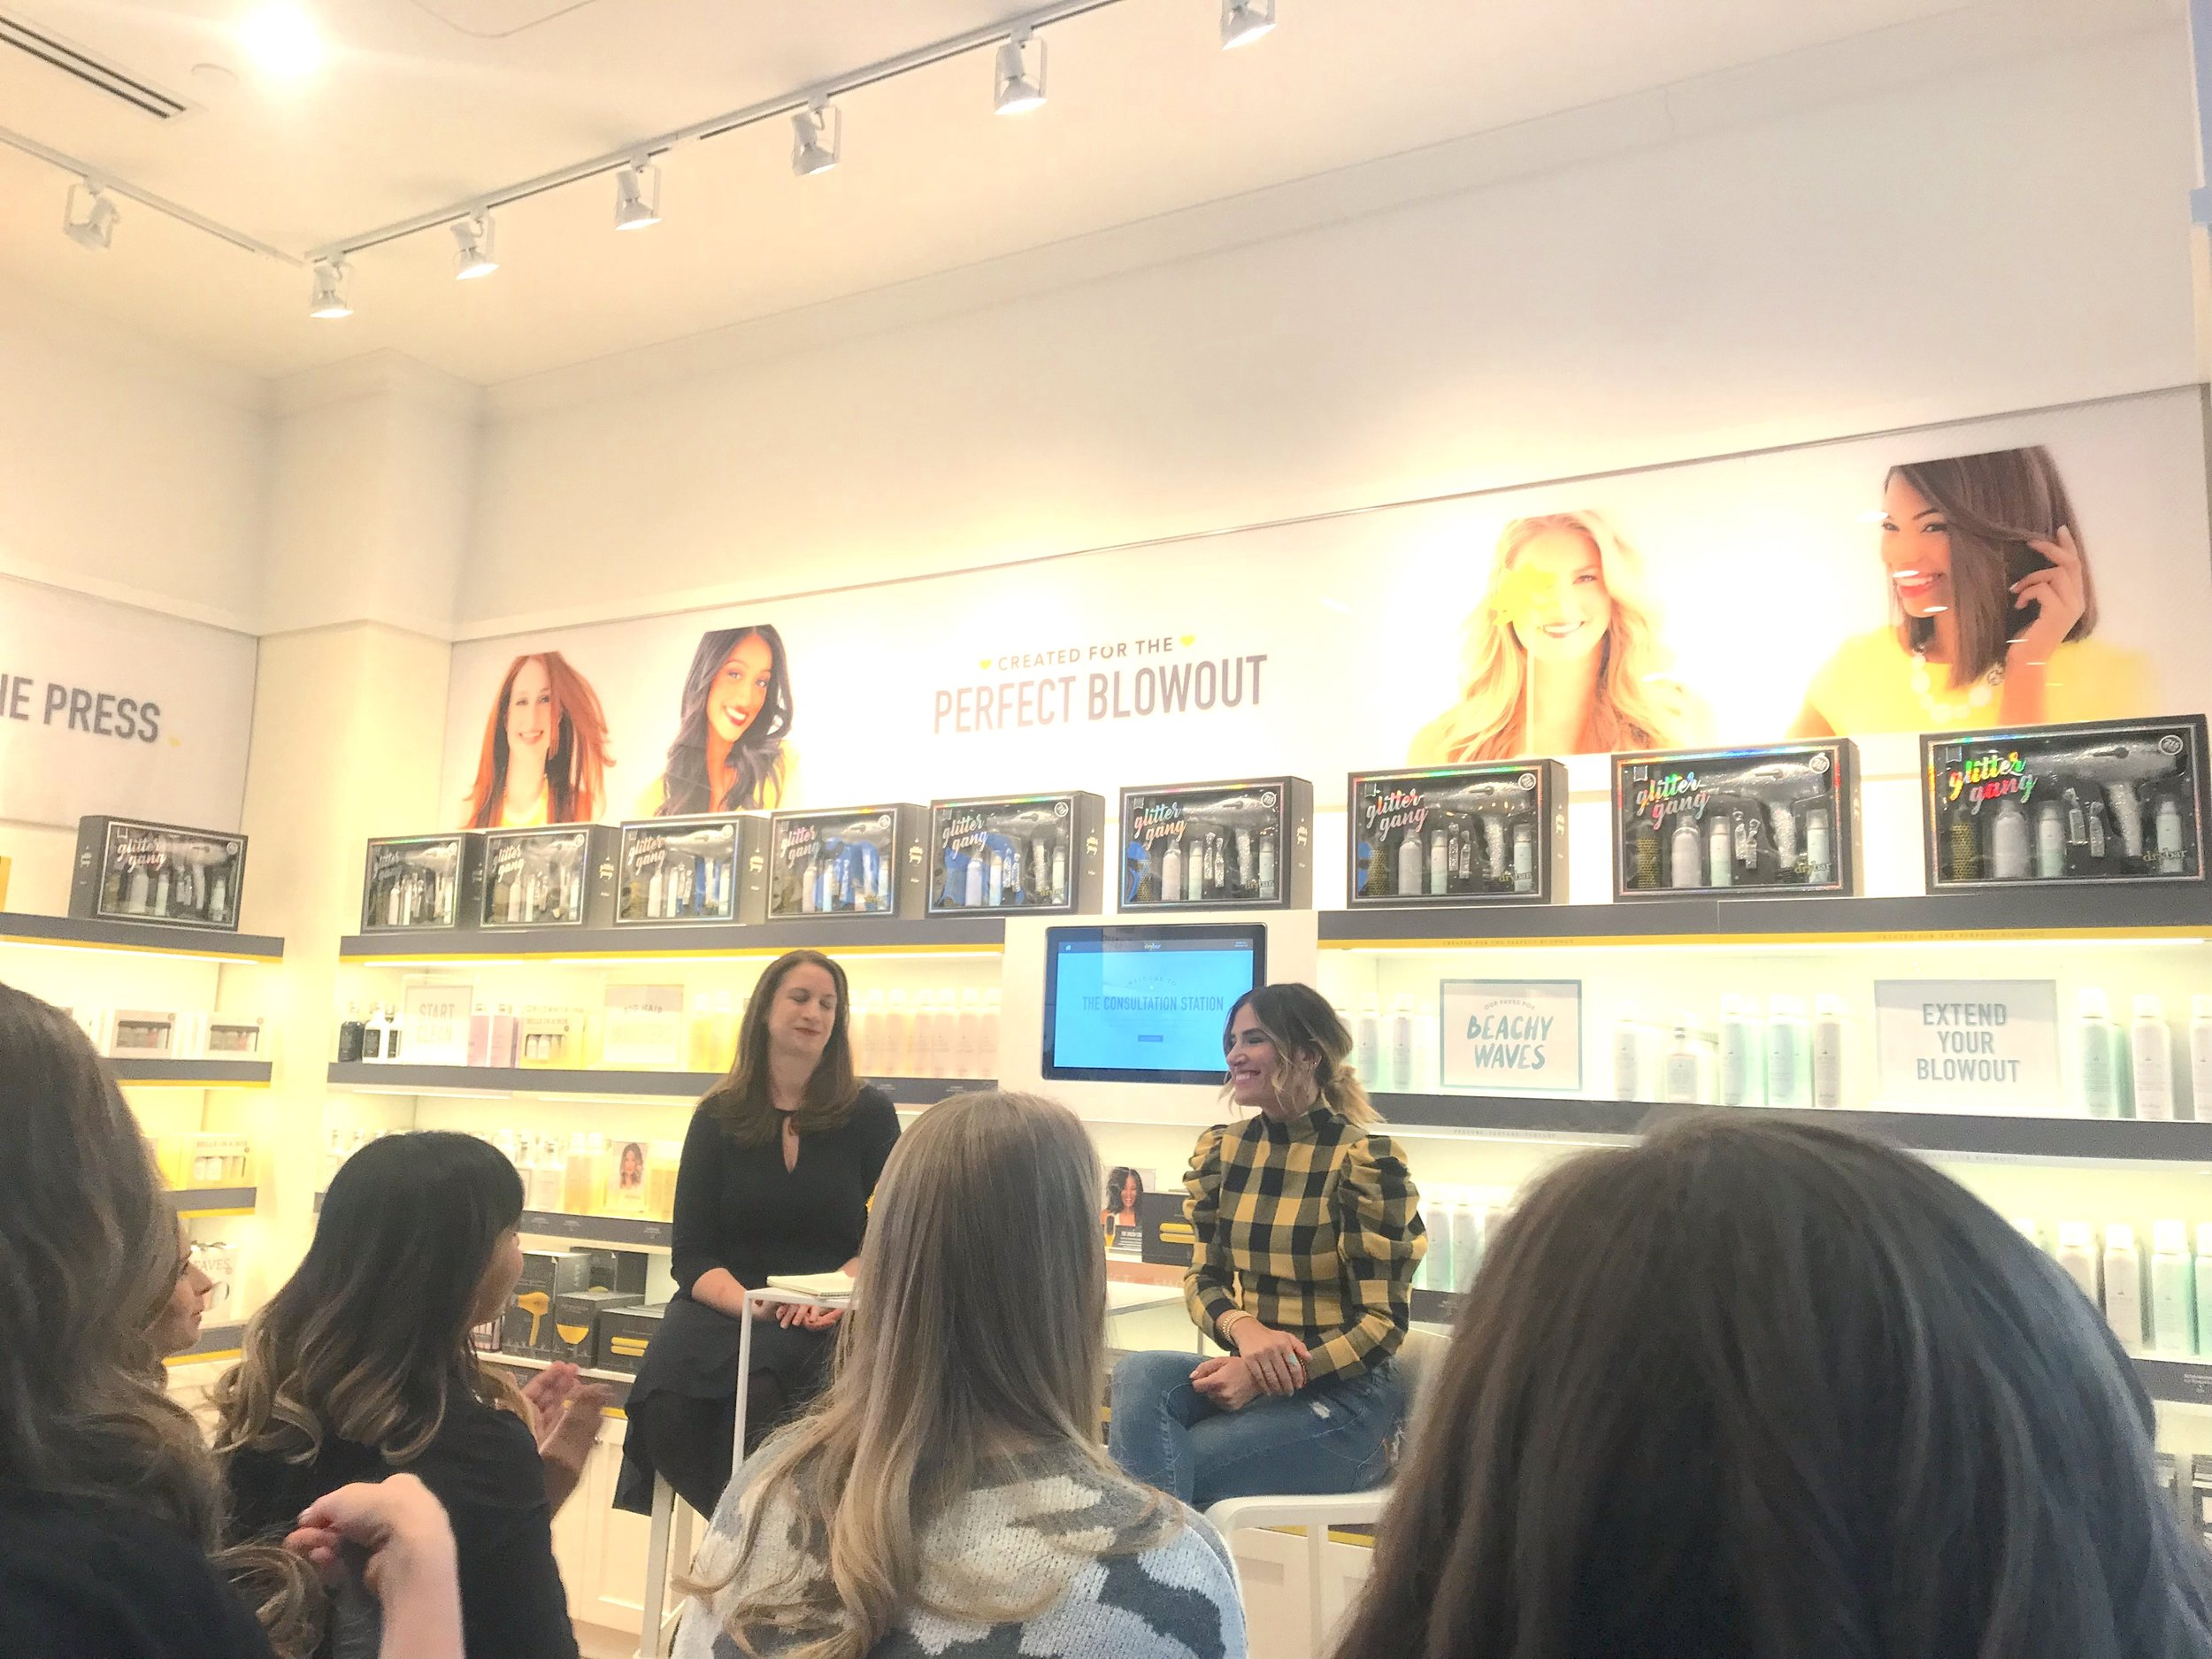 DryBar Co-Founder Alli Webb dishing all things authenticity.